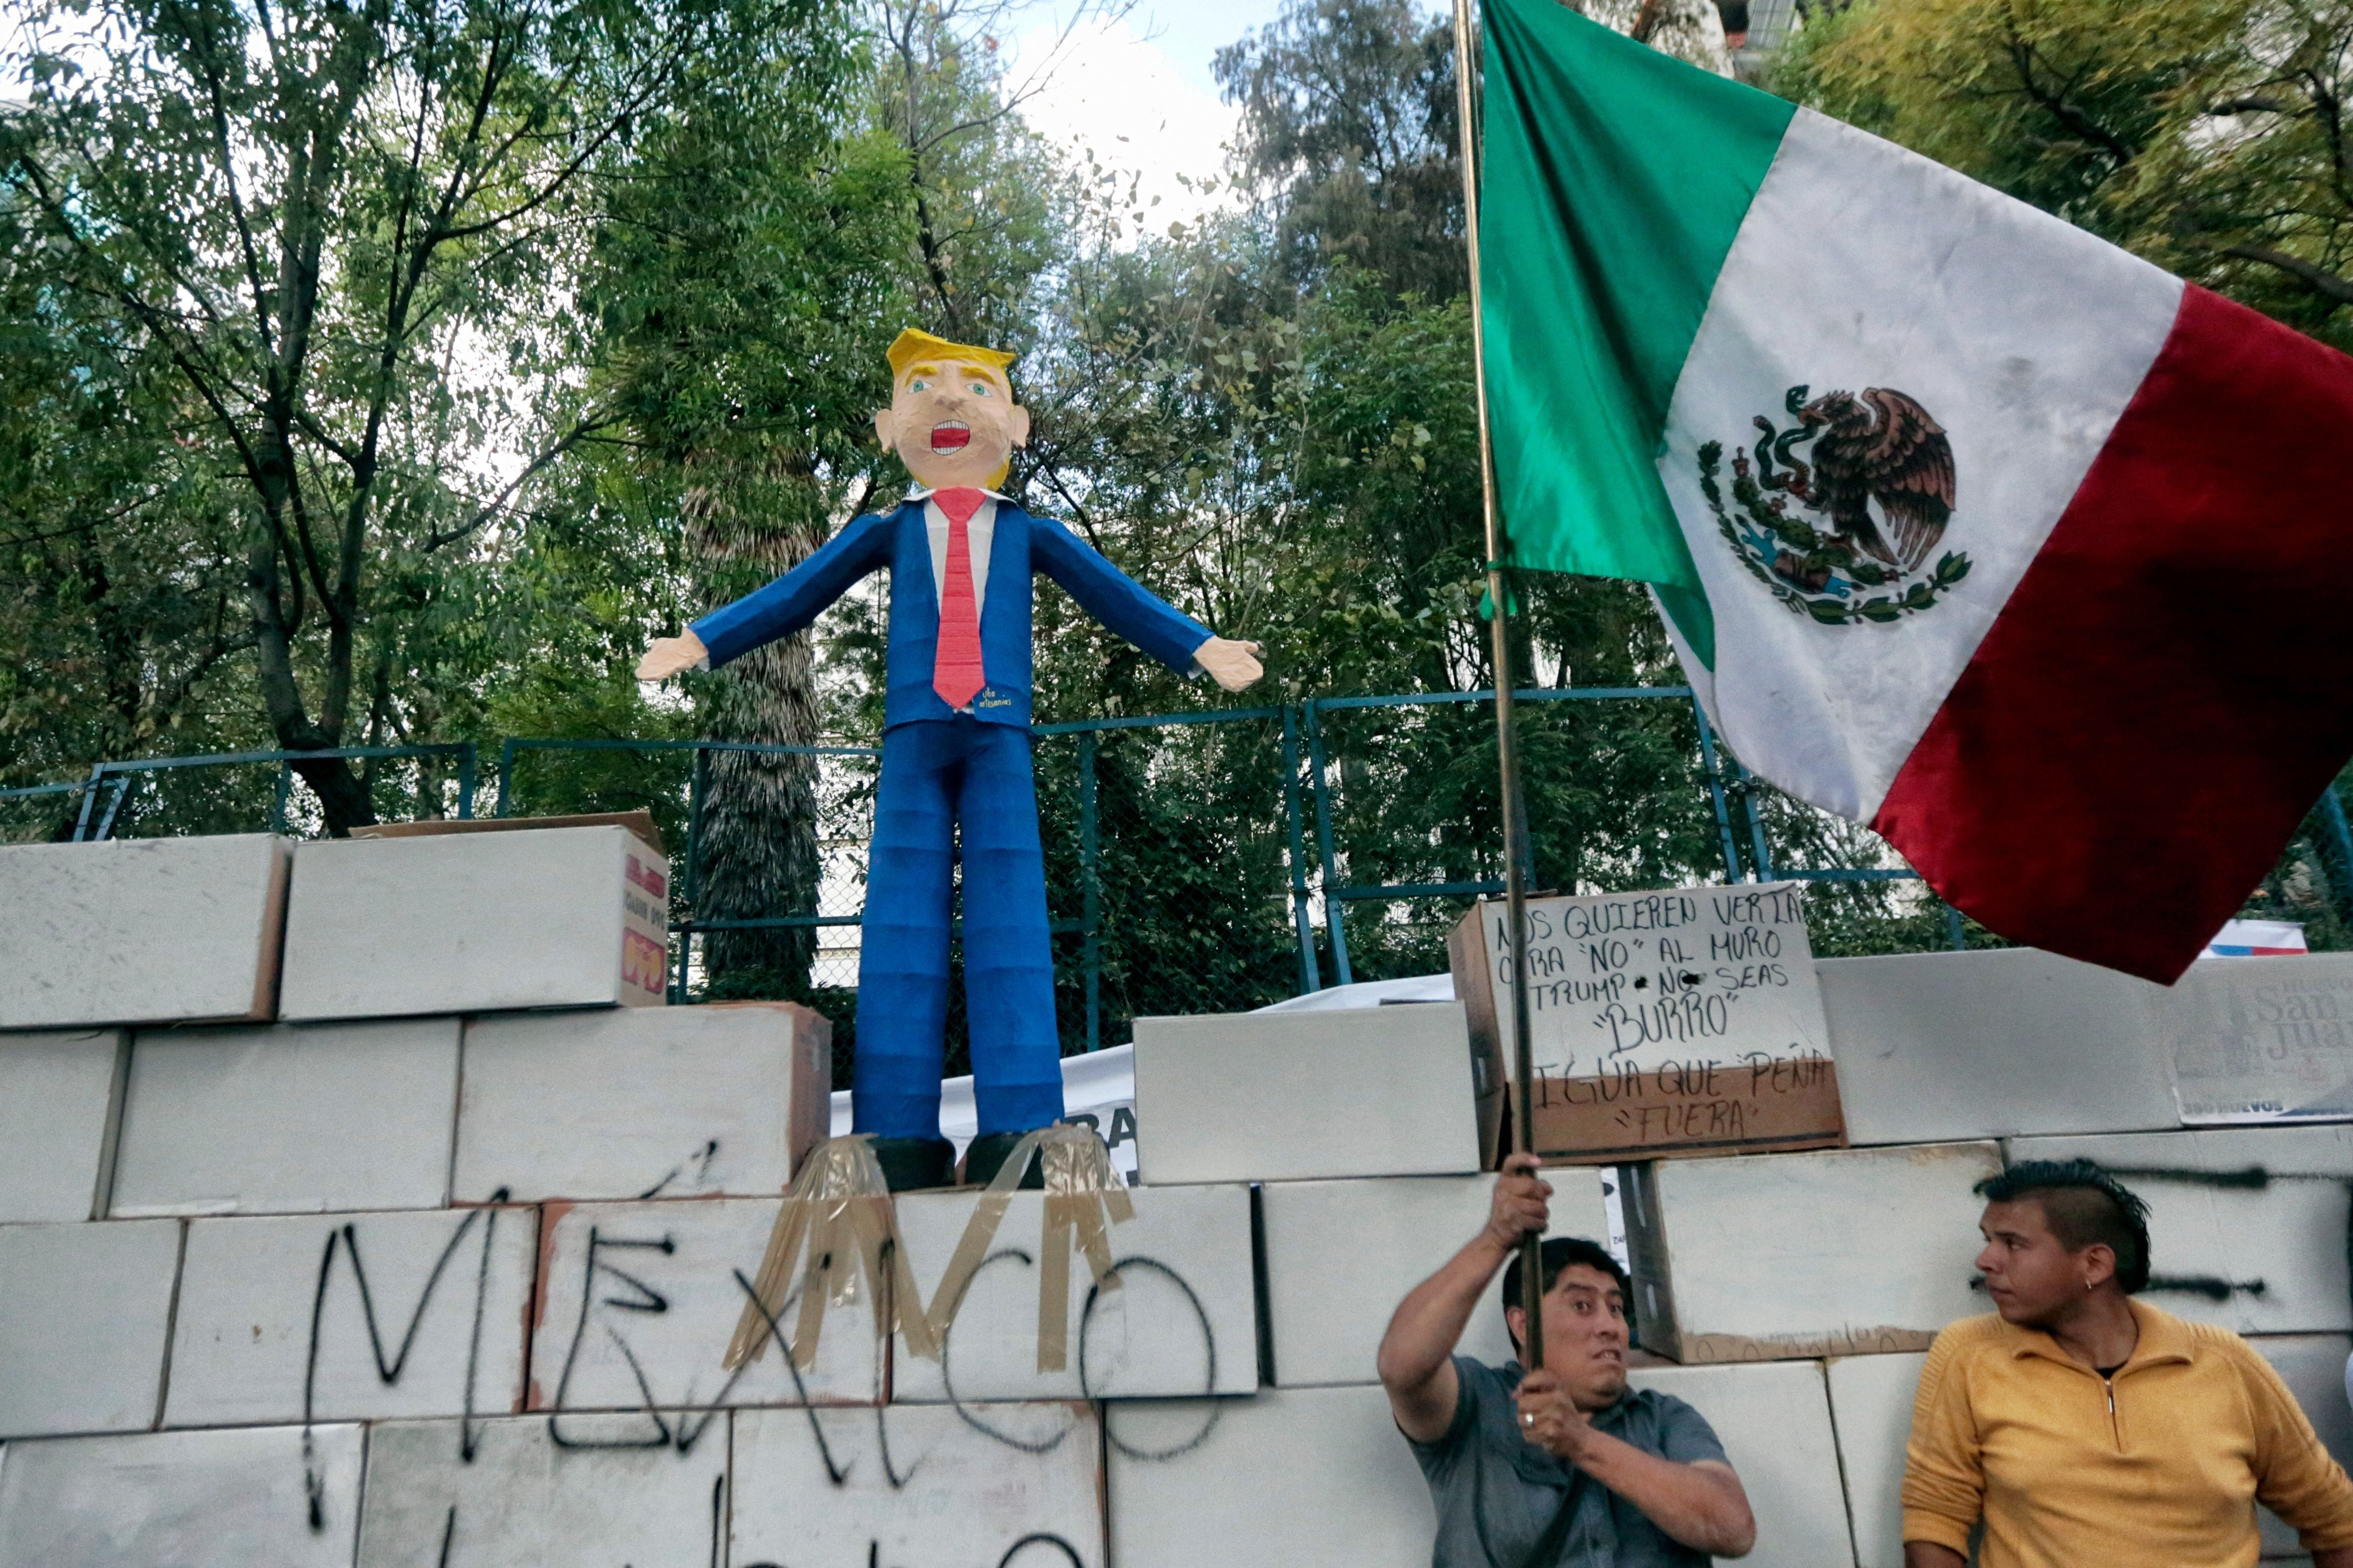 People protest against US President Donald Trump's inauguration next to a fake wall with a Mexican national flag and a dummy representing him in Mexico City on January 20, 2017. Billionaire outsider Donald Trump was sworn in on Friday as the 45th president of the United States and announced that he will shield the country's borders against immigrants and protect it from the 'ravages' of free trade. / AFP / PEDRO PARDO        (Photo credit should read PEDRO PARDO/AFP/Getty Images)